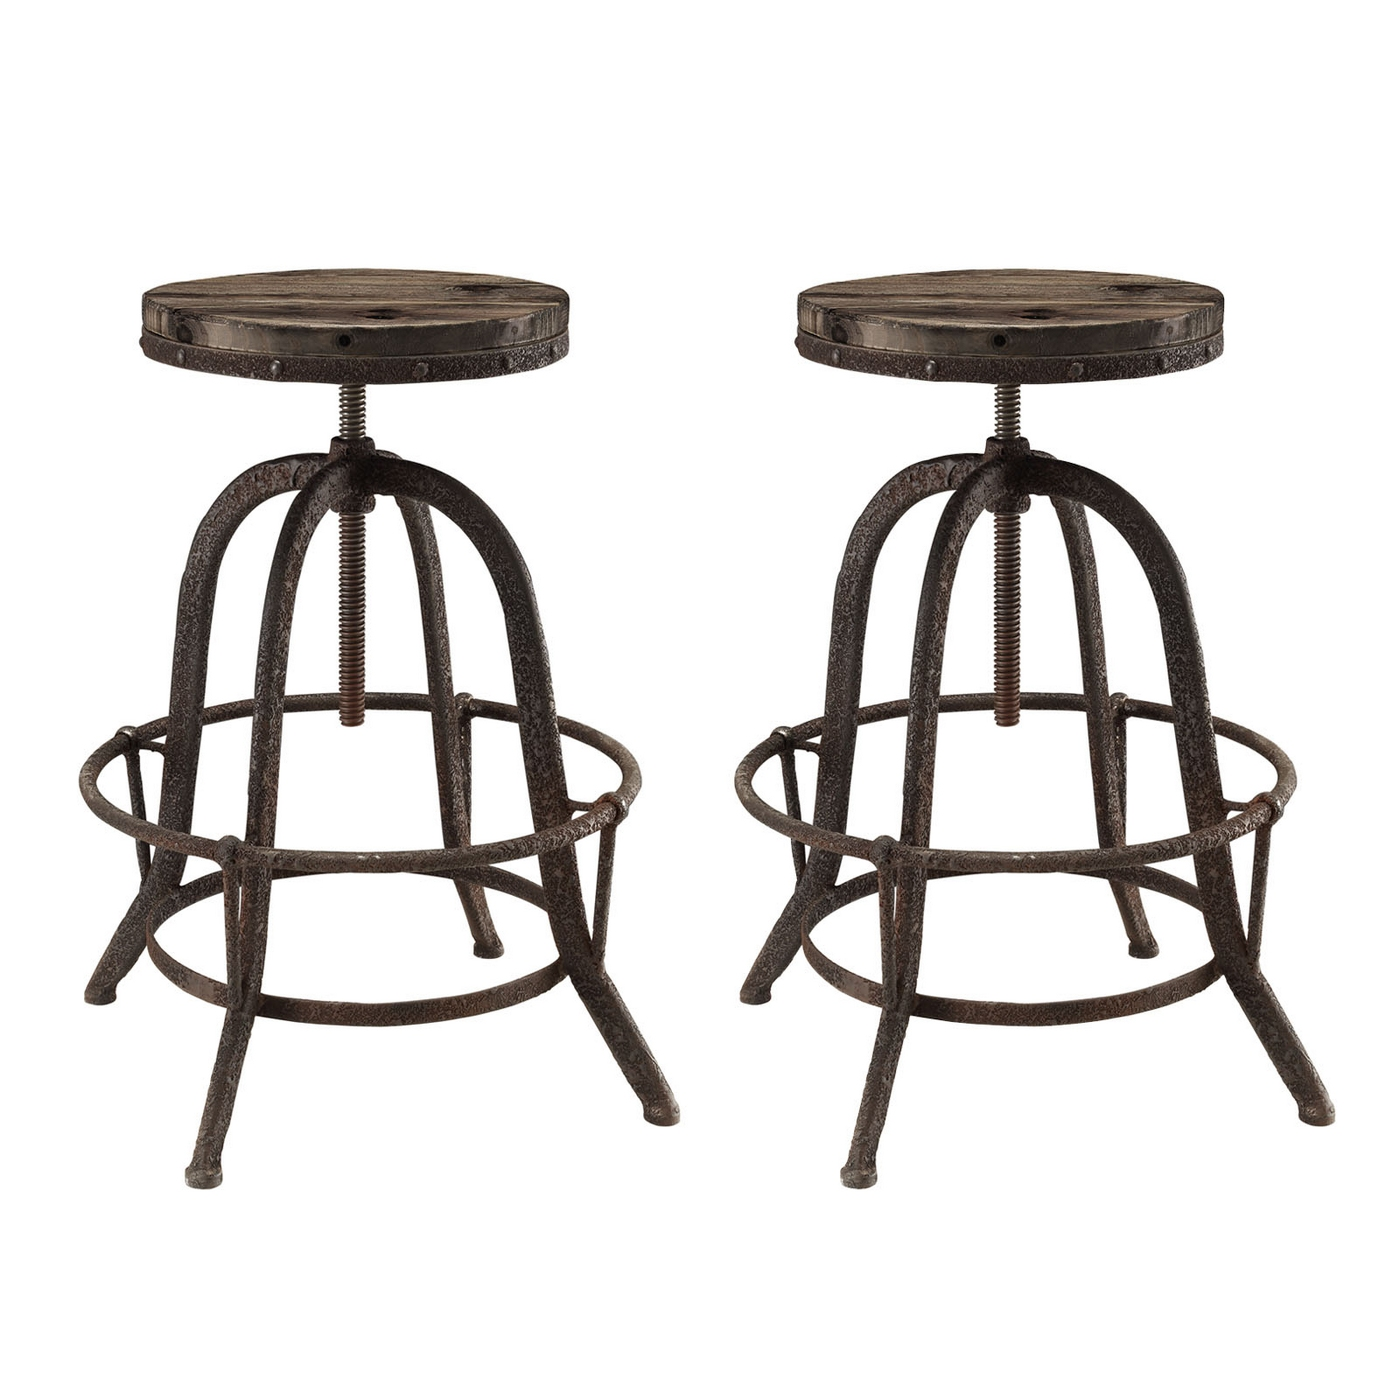 Set Of 2collect Industrial Bar Stool Wwood Seat amp Cast  : set of 2 collect industrial bar stool w wood seat cast iron frame brown 1 from shopfactorydirect.com size 1400 x 1400 jpeg 375kB